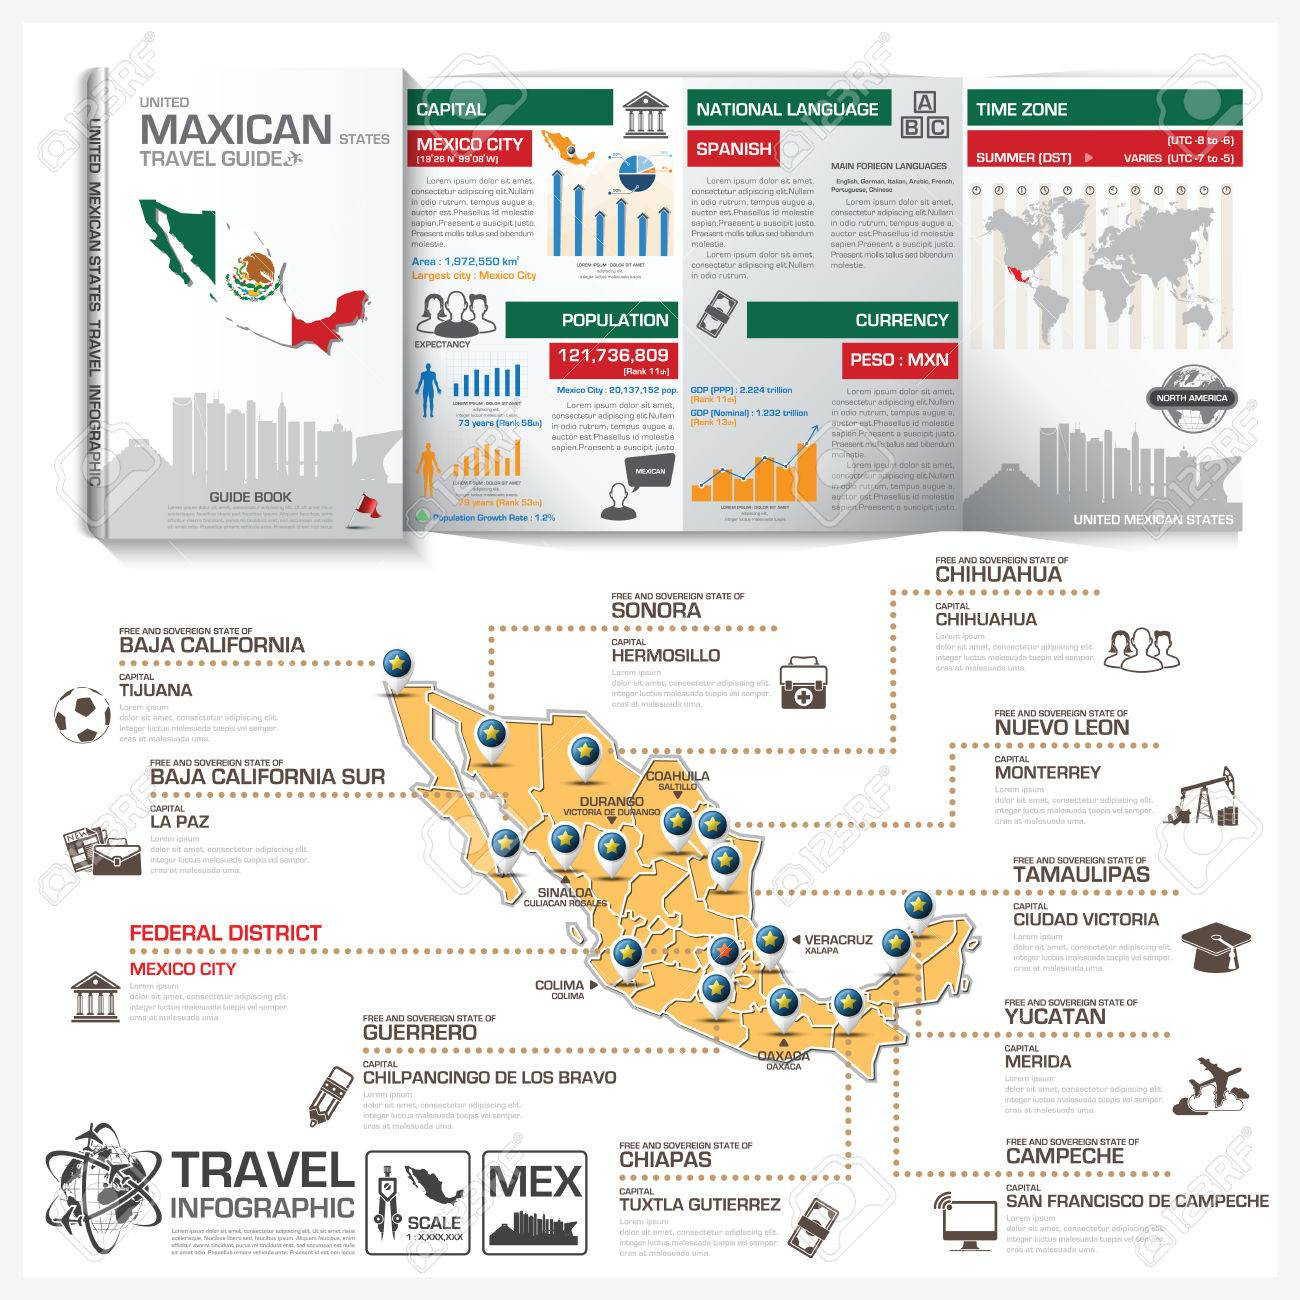 United Mexican States Travel Guide Book Business Infographic With Map  Vector Design Template Stock Vector -